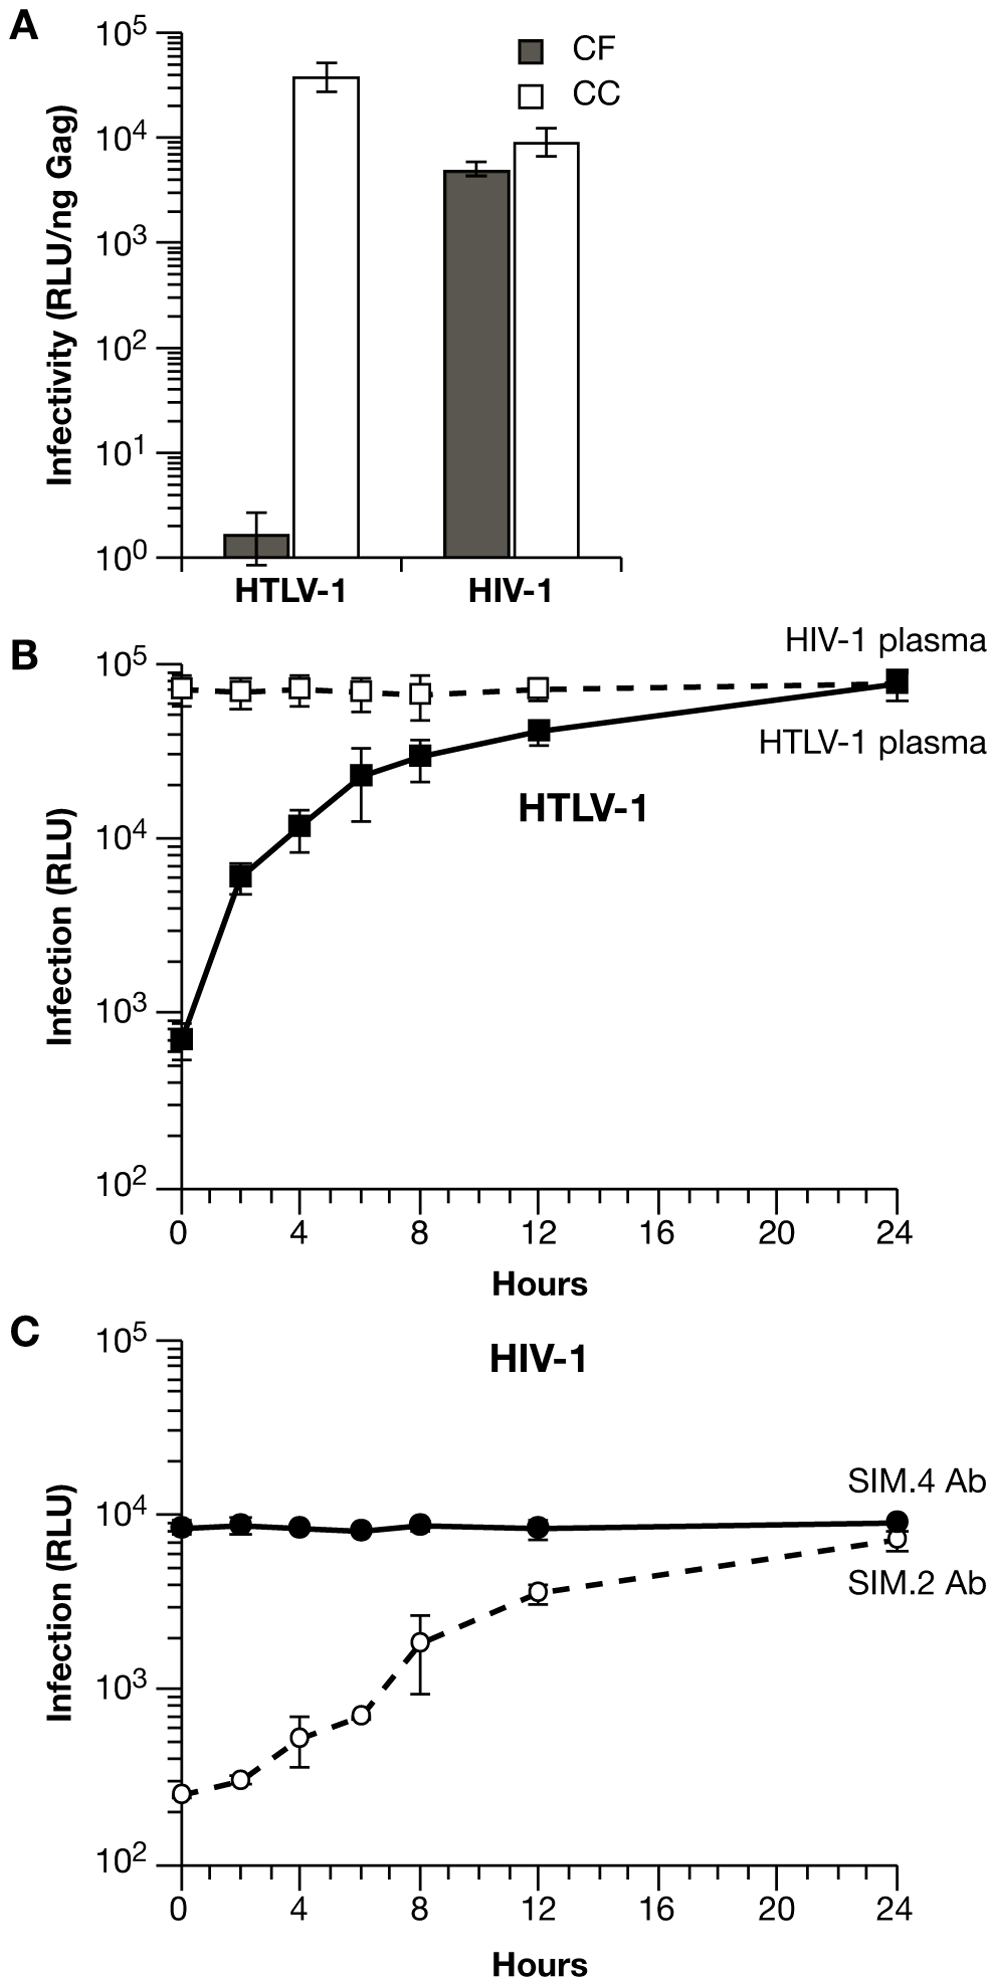 Differences in the mechanisms of transmission for HTLV-1 and HIV-1 in Jurkat-Raji/CD4 cocultures.